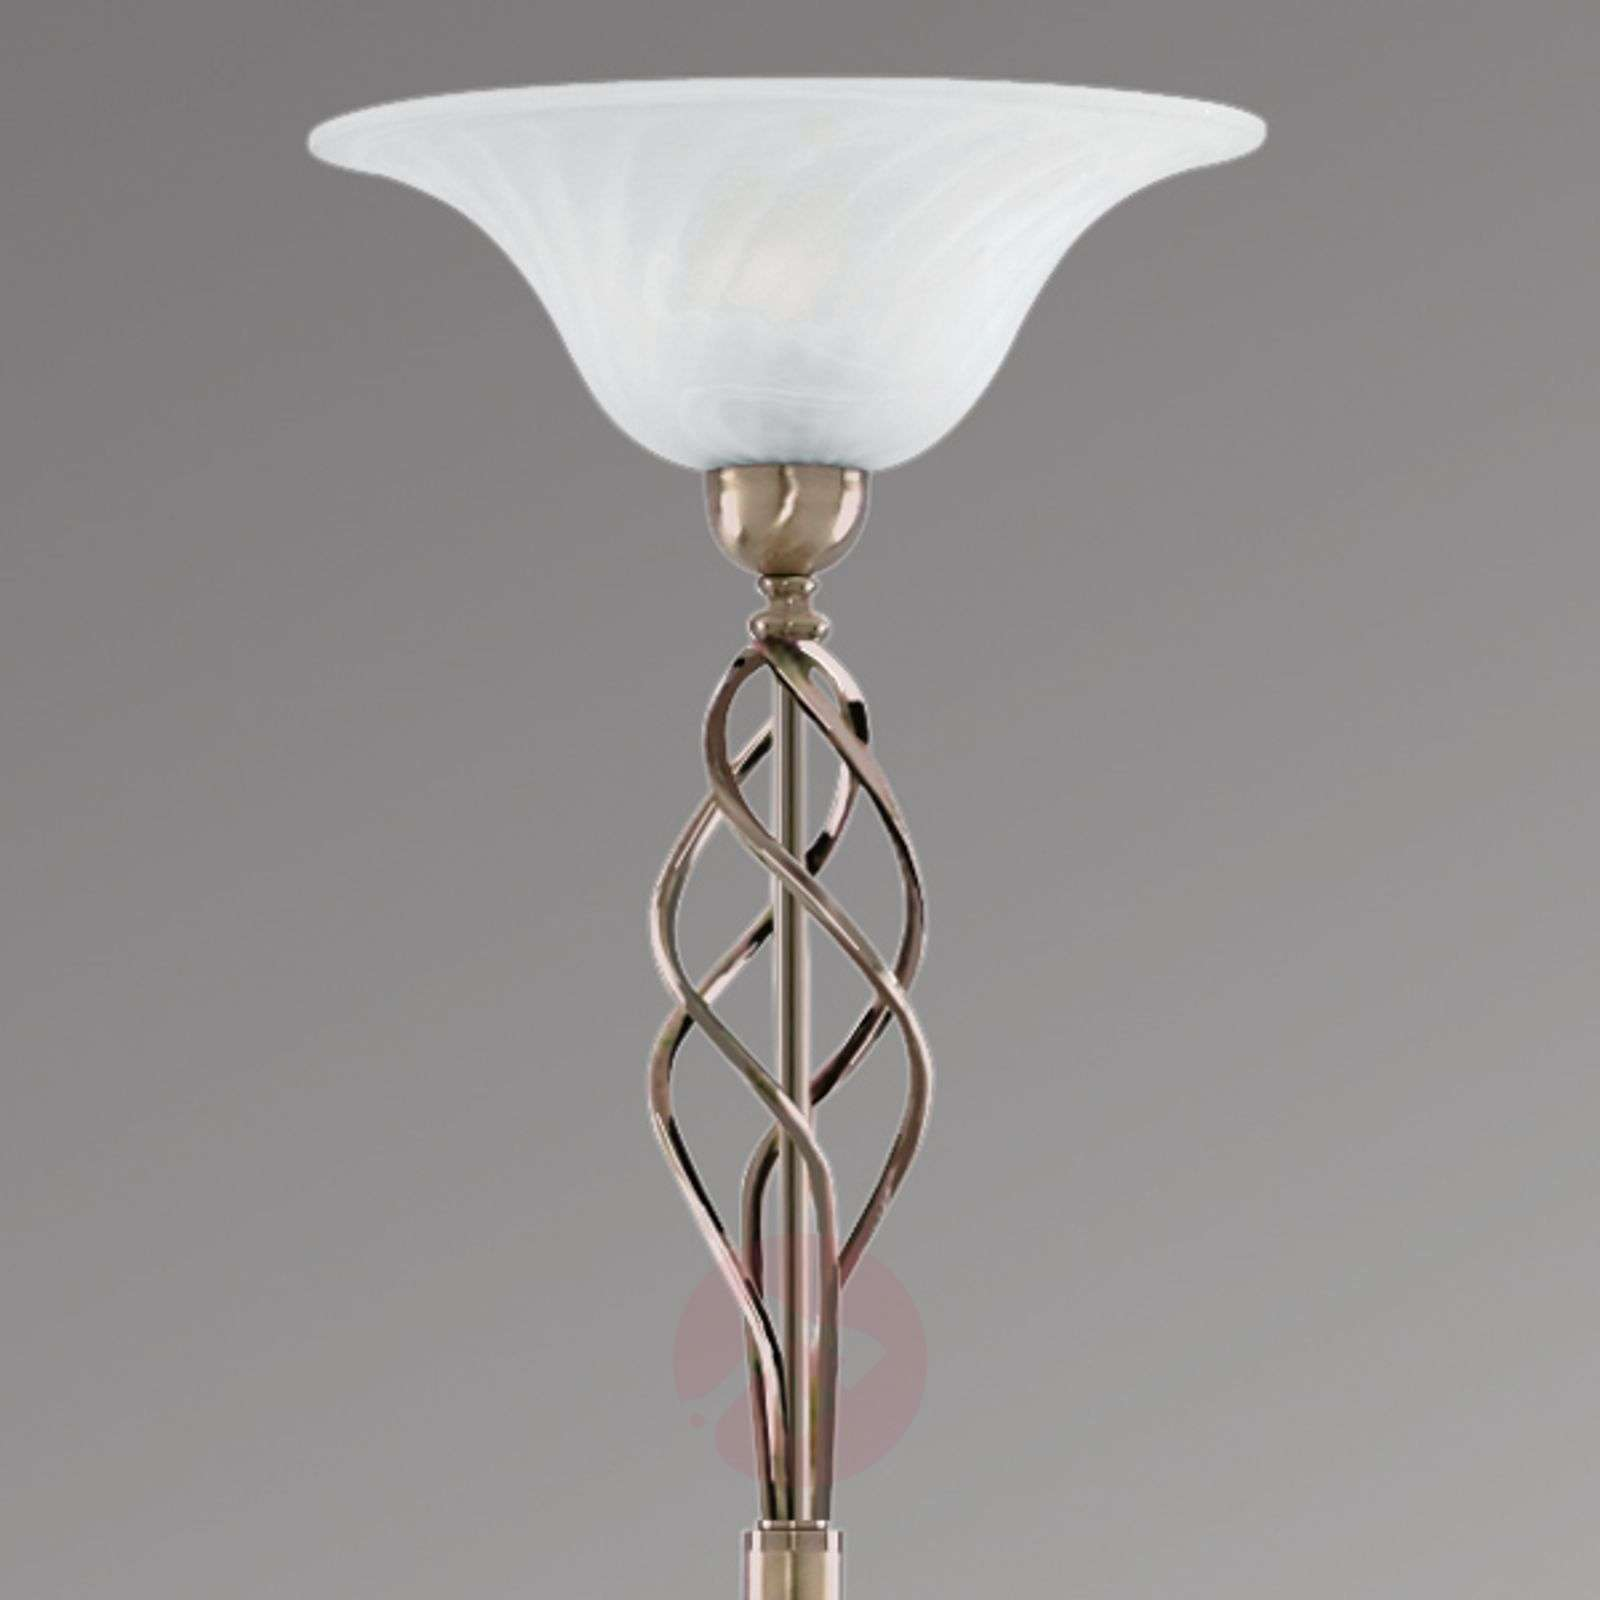 Beautiful Fionna ceiling uplighter, antique brass-8570252-01